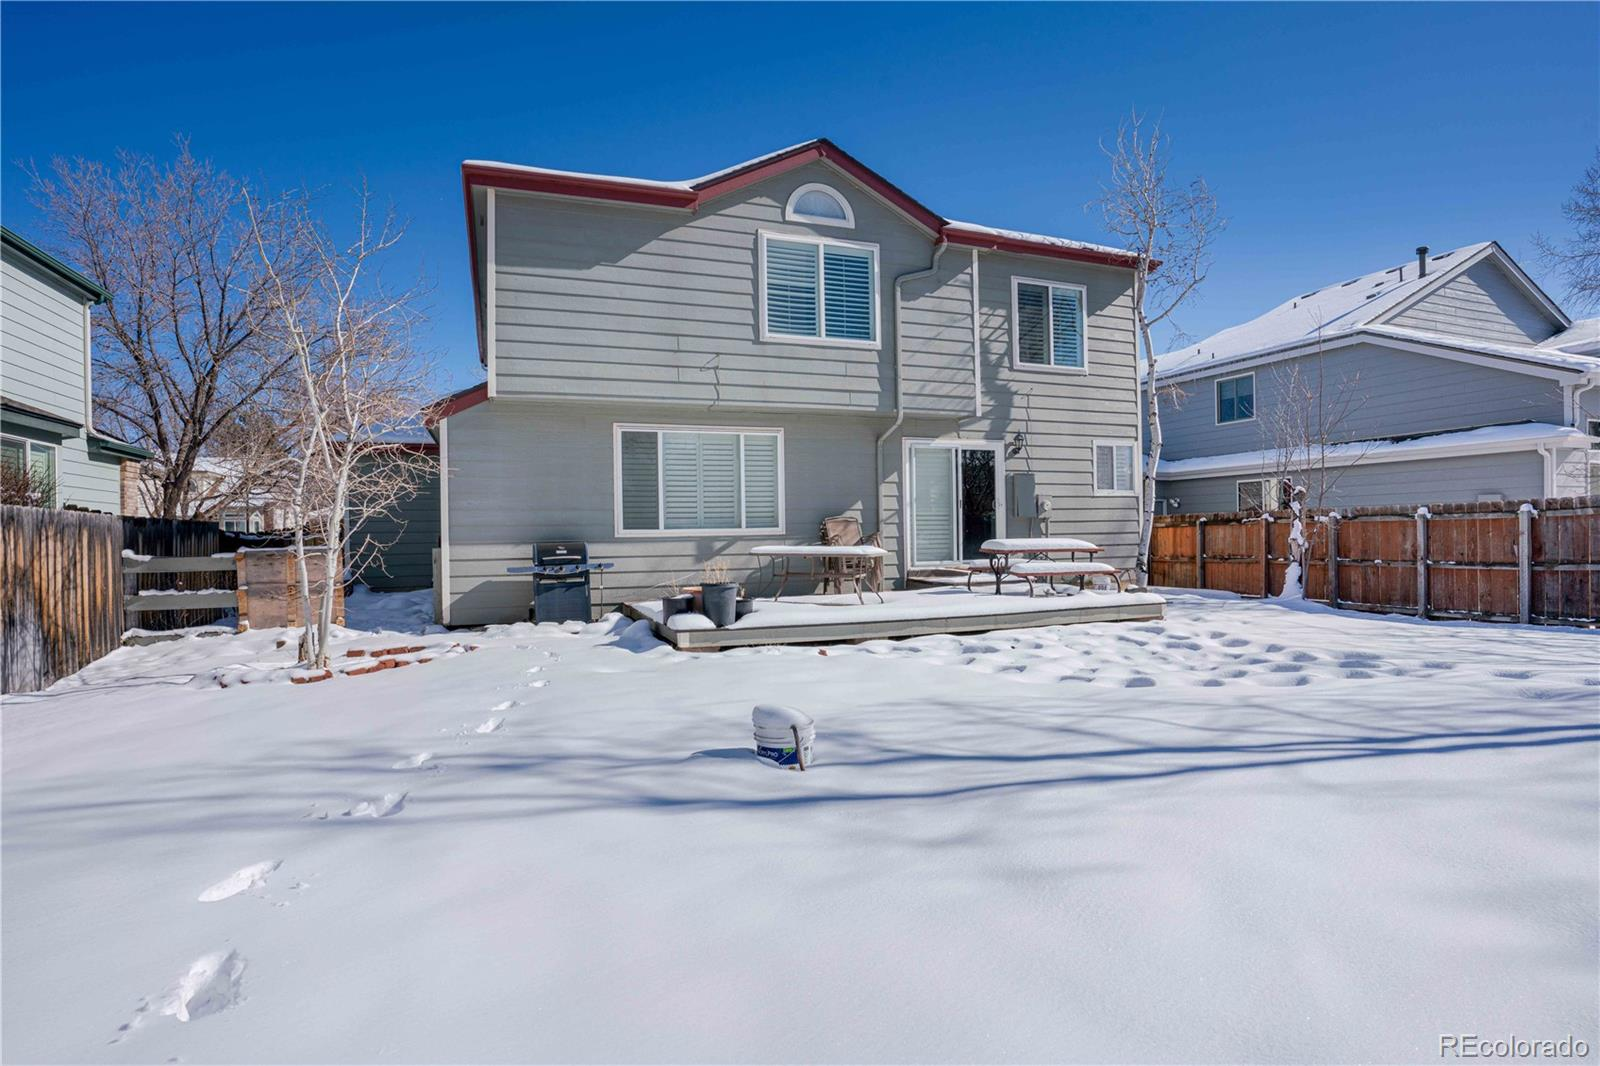 MLS# 6435720 - 15 - 2237 E Holyoke Lane, Superior, CO 80027